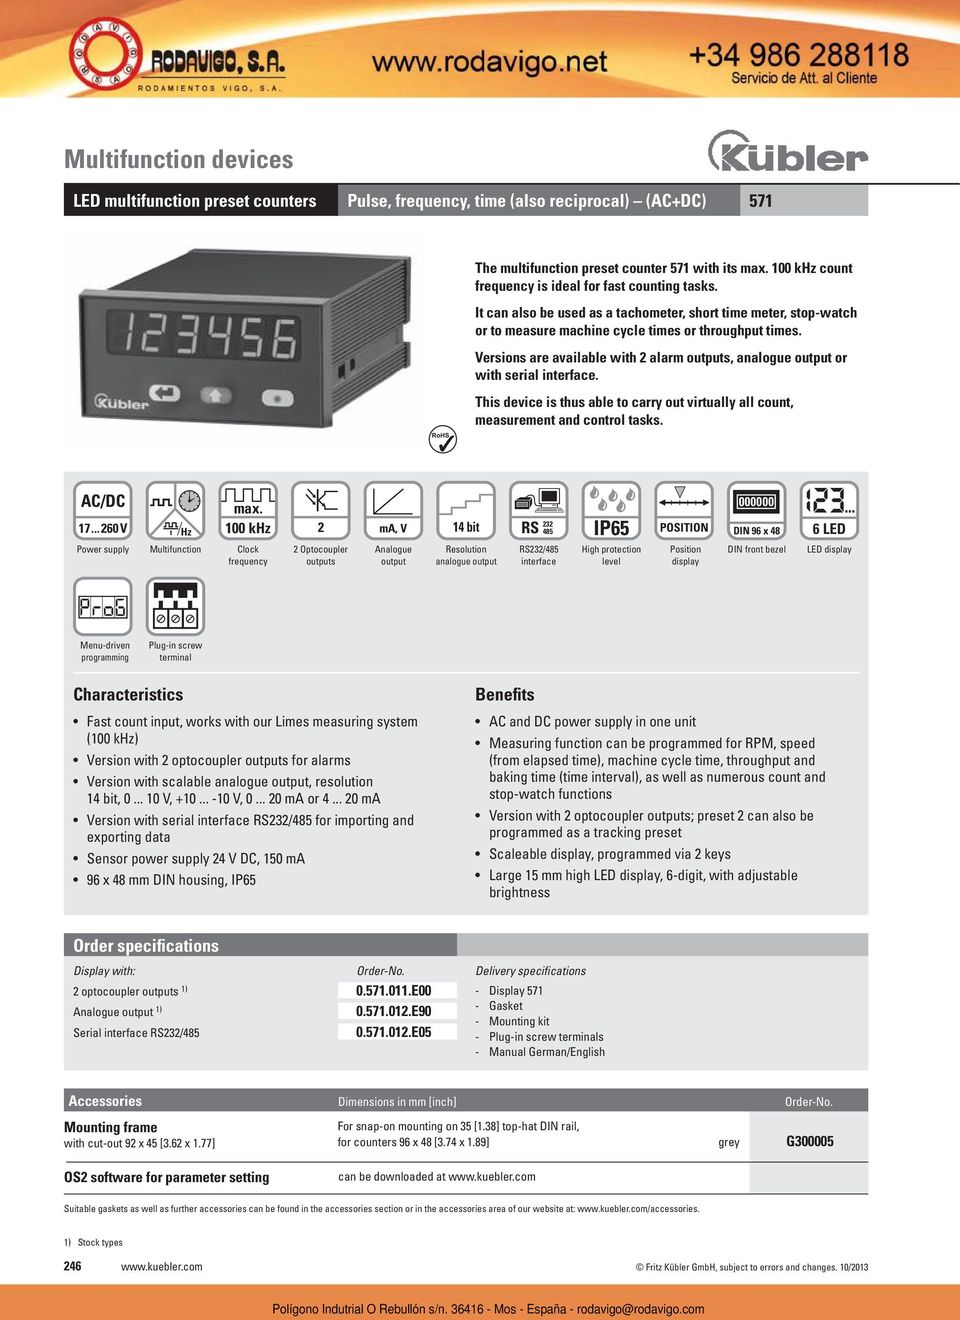 Versions are available with 2 alarm outputs, analogue output or with serial interface. RoHS This device is thus able to carry out virtually all count, measurement and control tasks. AC/DC 17.